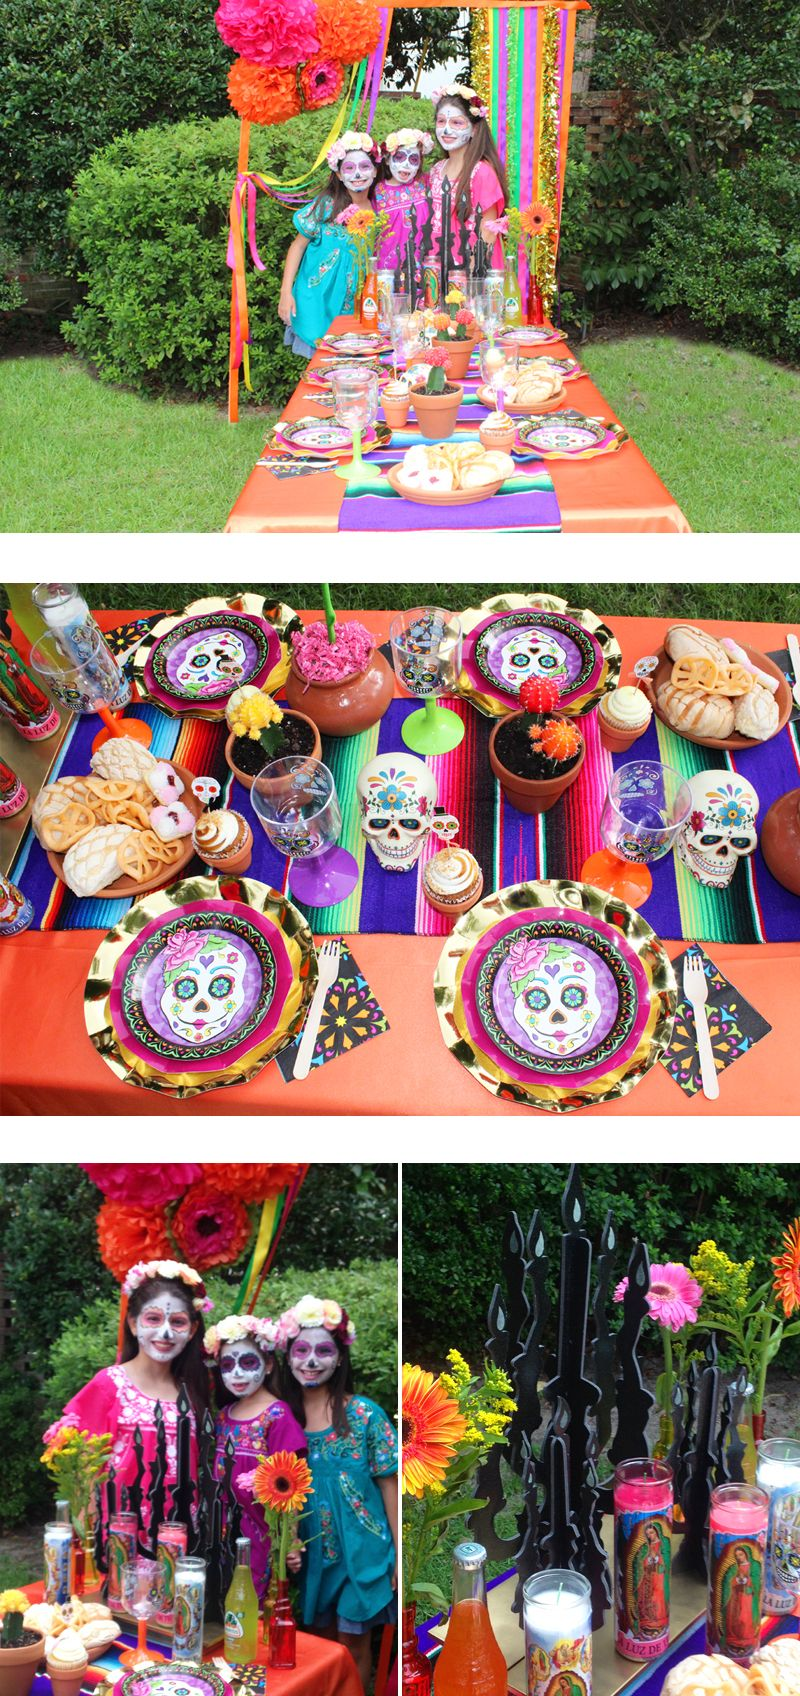 Halloween Day Of The Dead Party Via Blossom Day Of The Dead Party Hallowen Party Mexican Party Theme